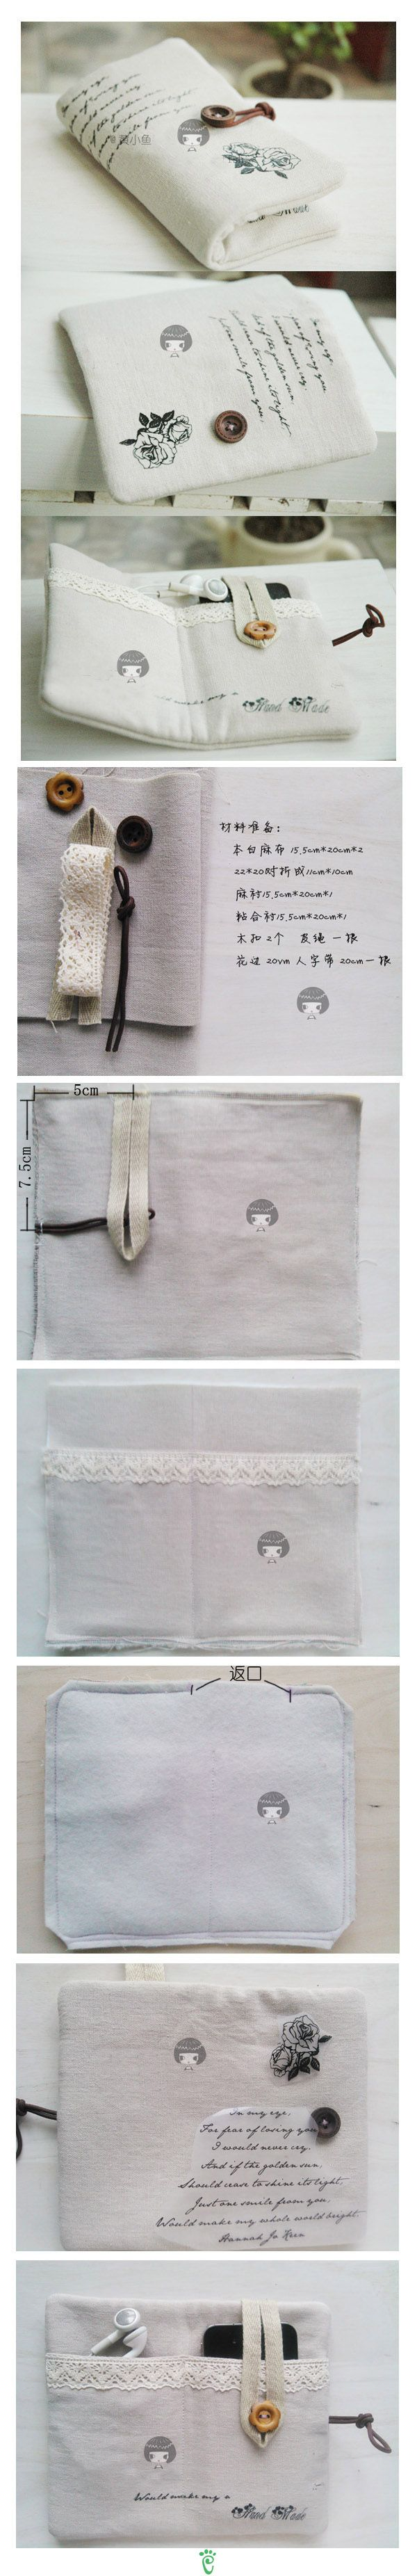 Folding pocket pouch for ipod or iphone and ear buds @Kelly Teske Goldsworthy Teske Goldsworthy Teske Goldsworthy Jones